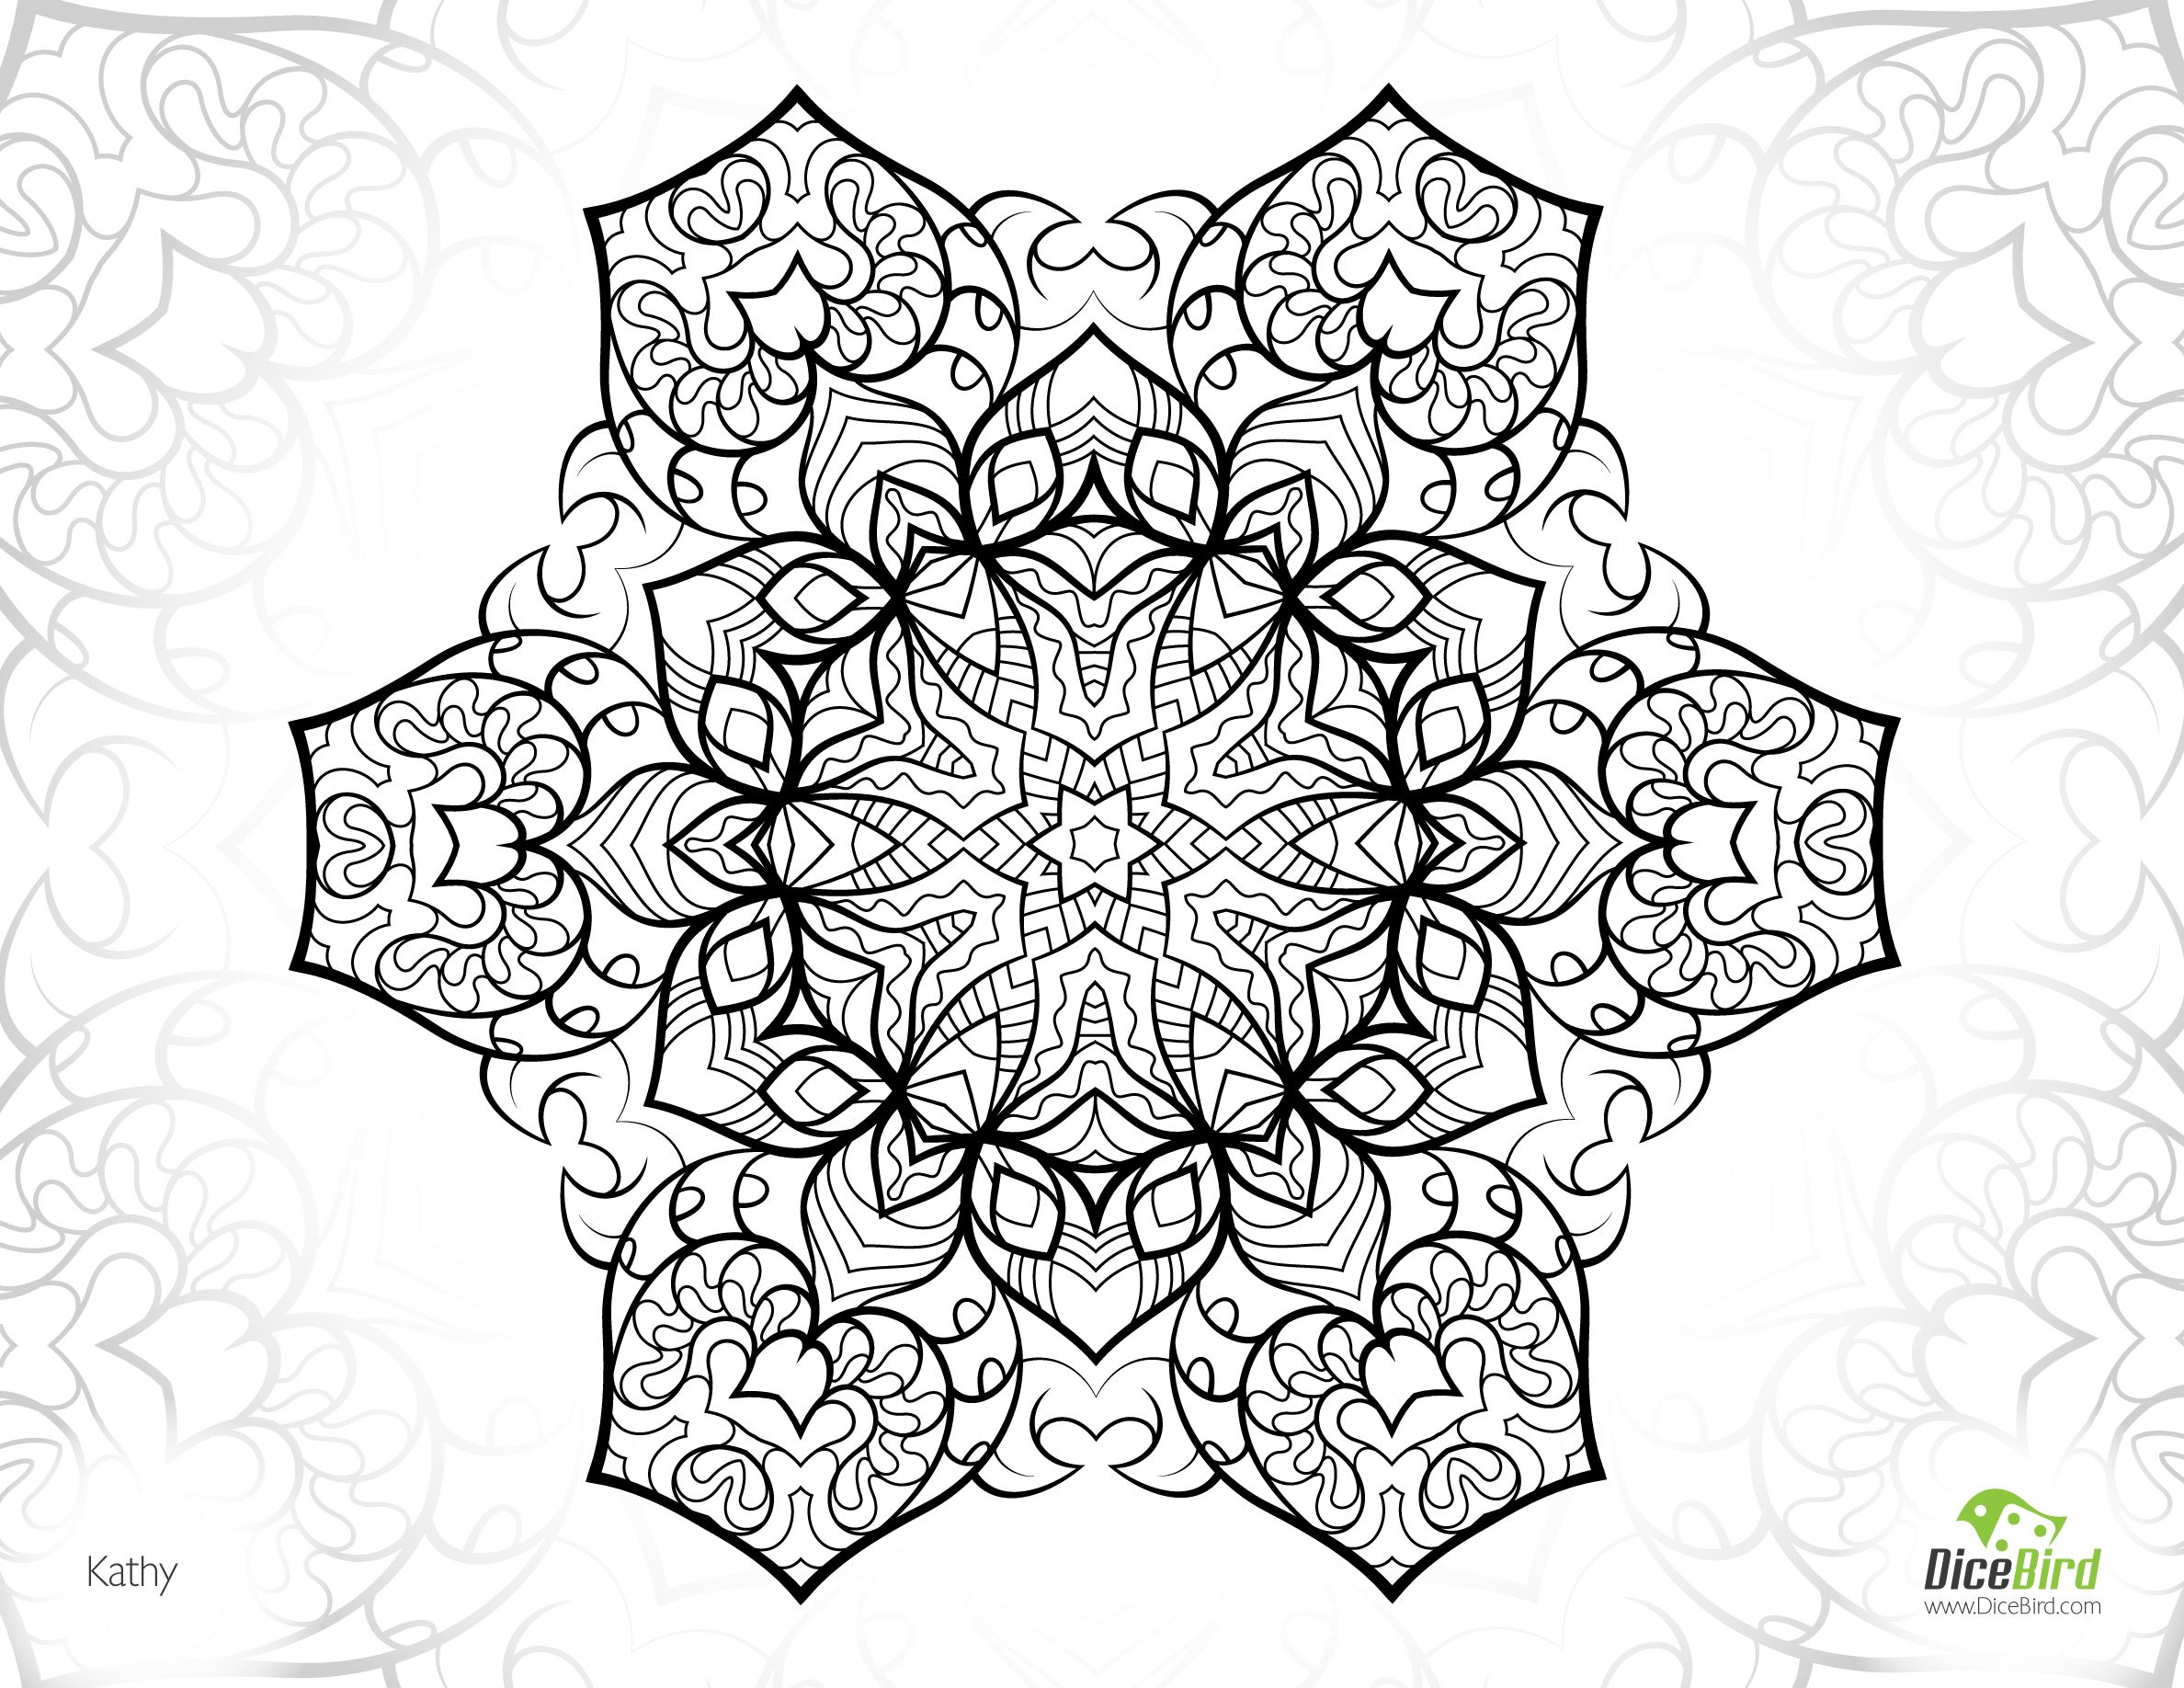 Coloring pictures for adults flowers - Kathy Coloring Pages For Adults Flowers